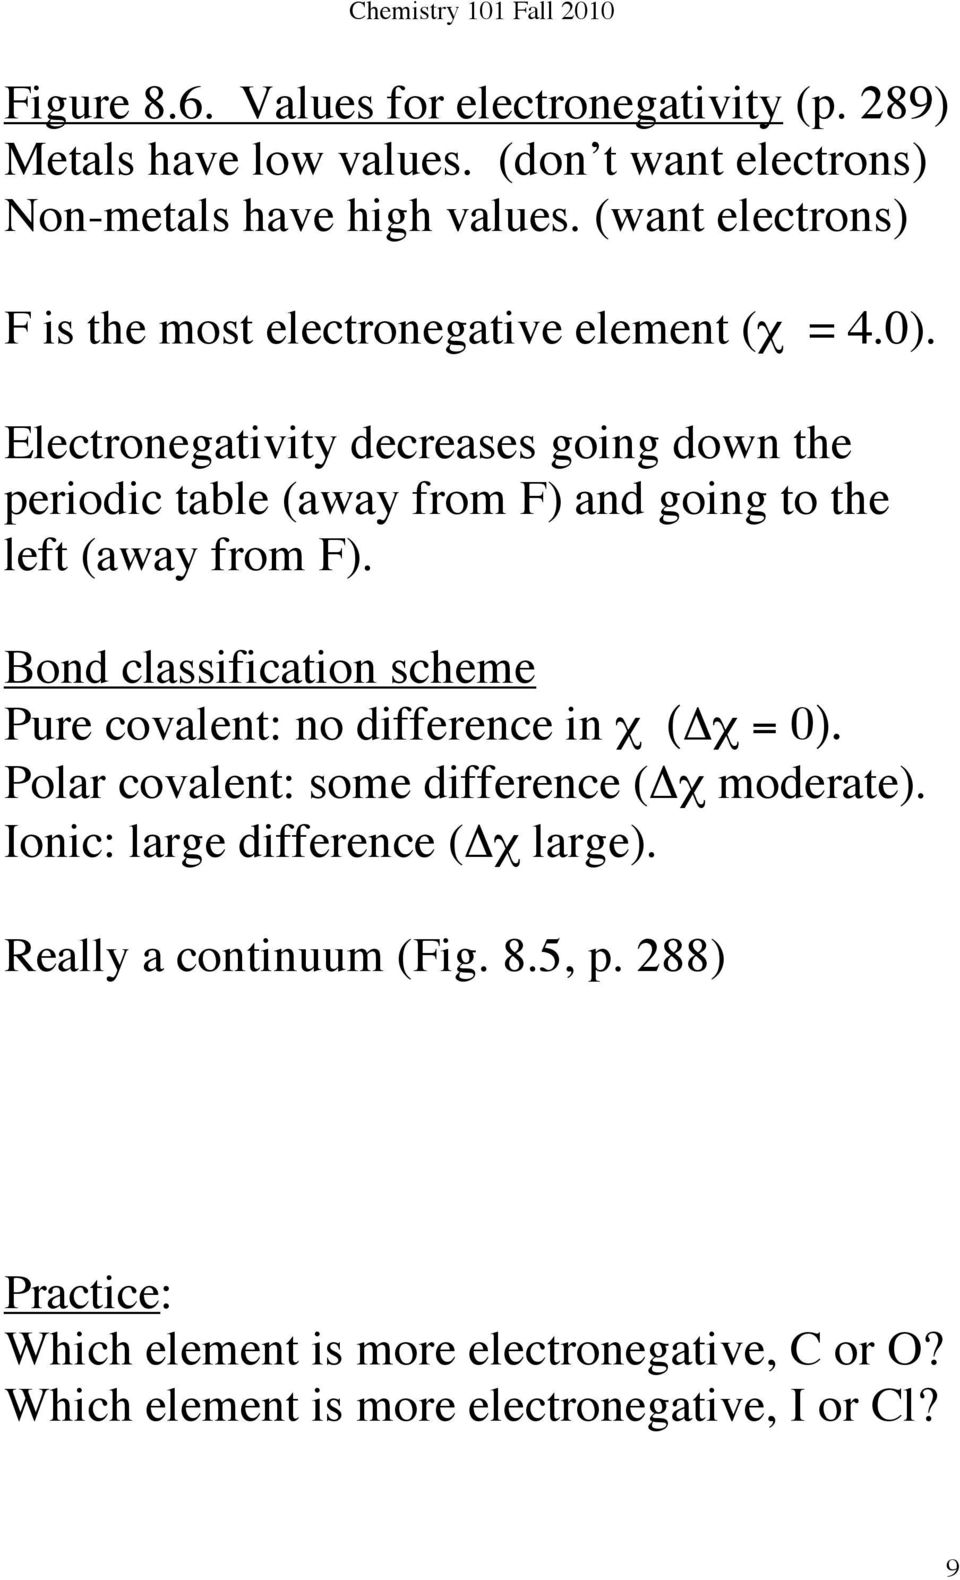 Electronegativity decreases going down the periodic table (away from F) and going to the left (away from F).